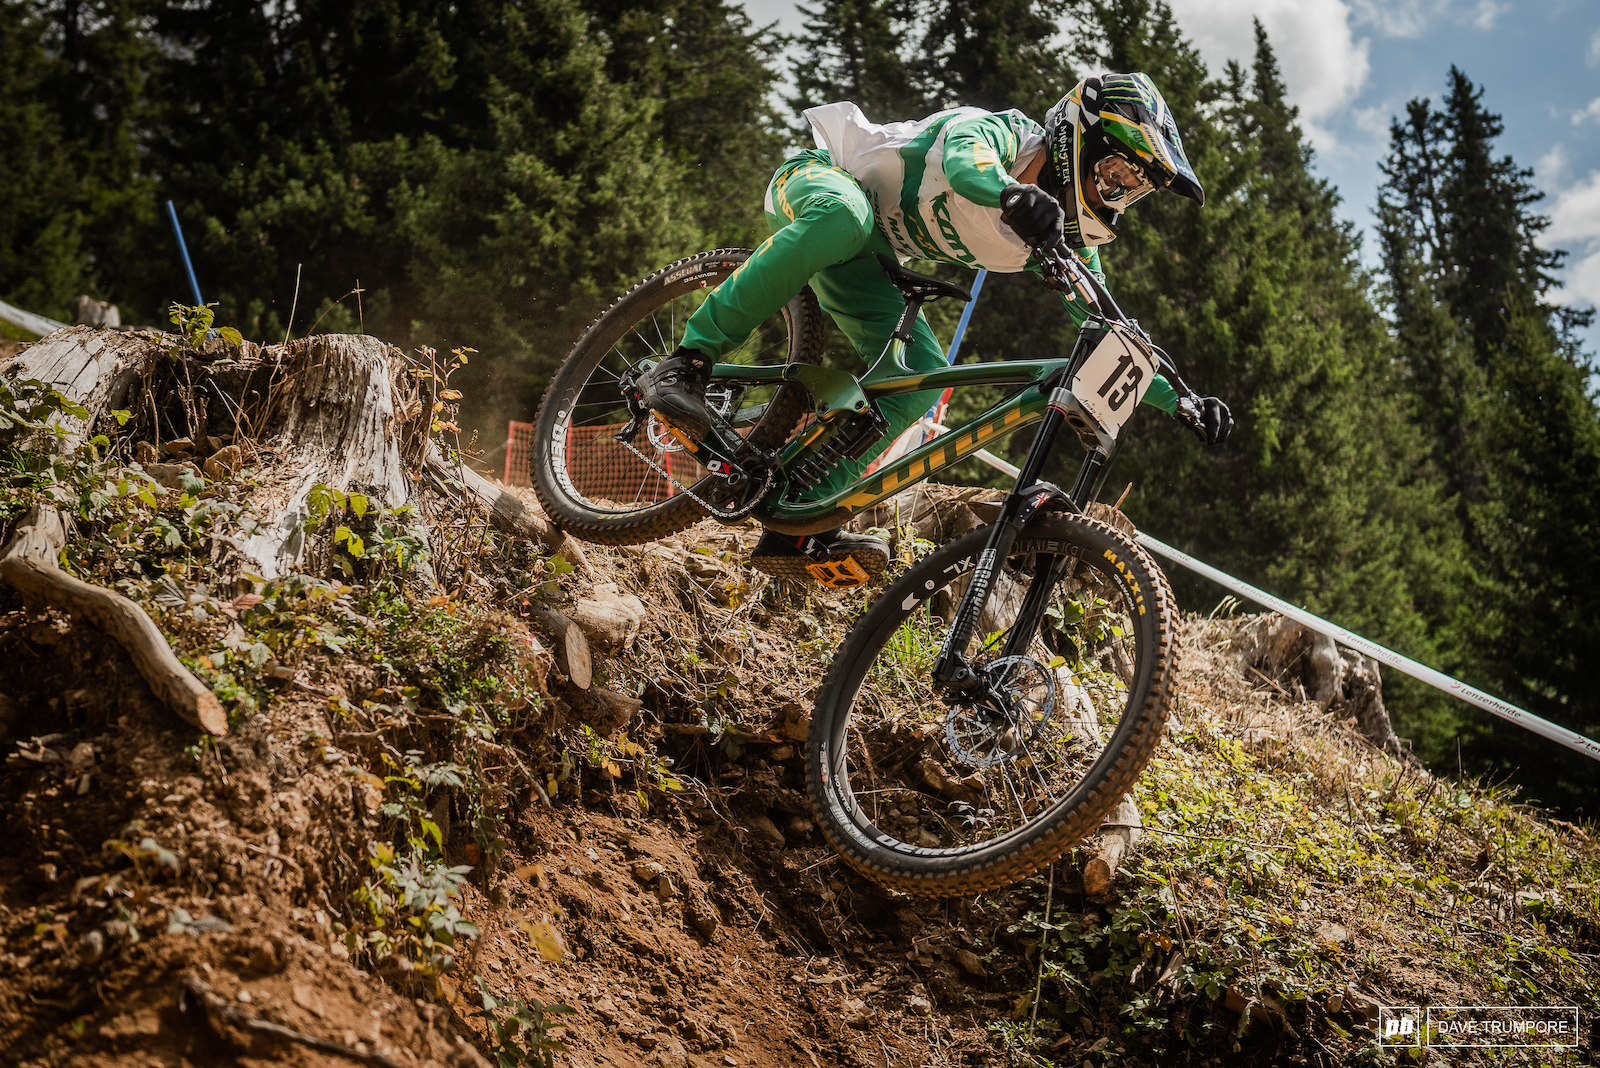 Connor Fearon cuts to the inside off one of the big drops rather than taking the berm along the outside.